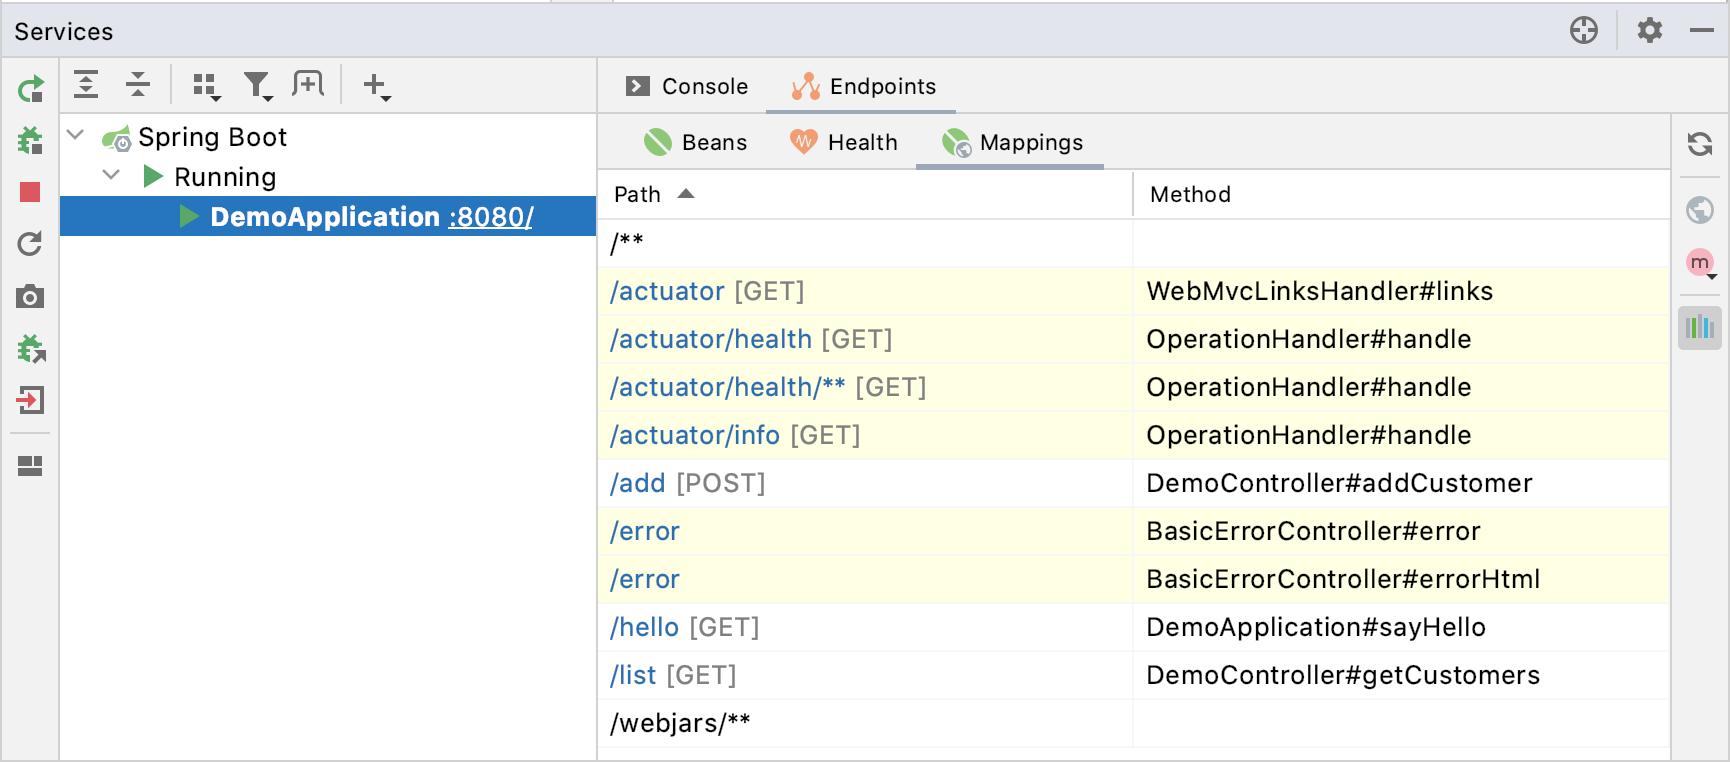 Spring Boot Mappings endpoints tab